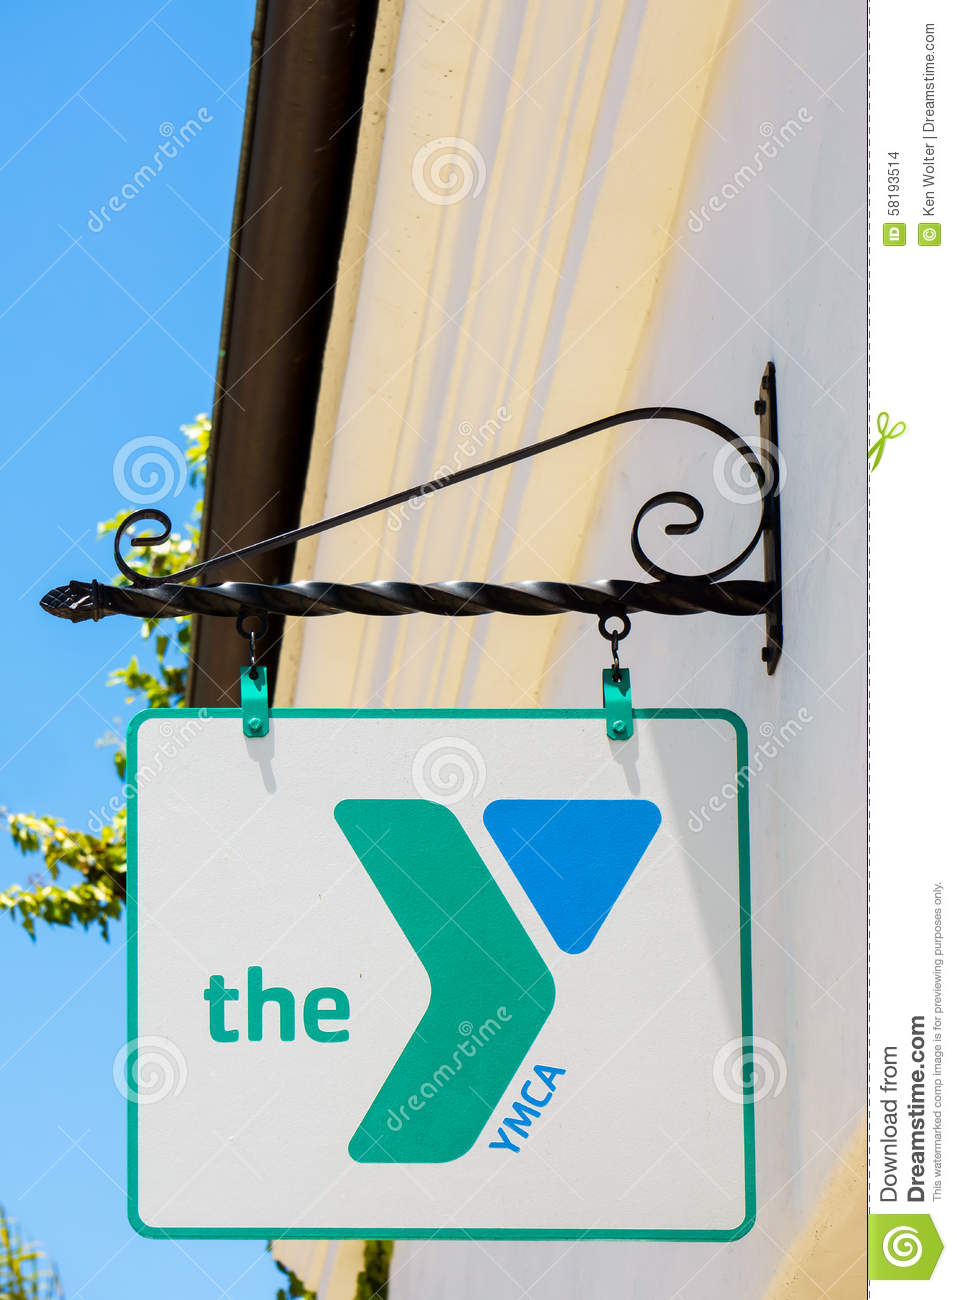 an overview of the young mens christian association the ymca The young men's christian association (ymca) was founded in england in 1844 to provide a safe place for young men to learn and socialize.